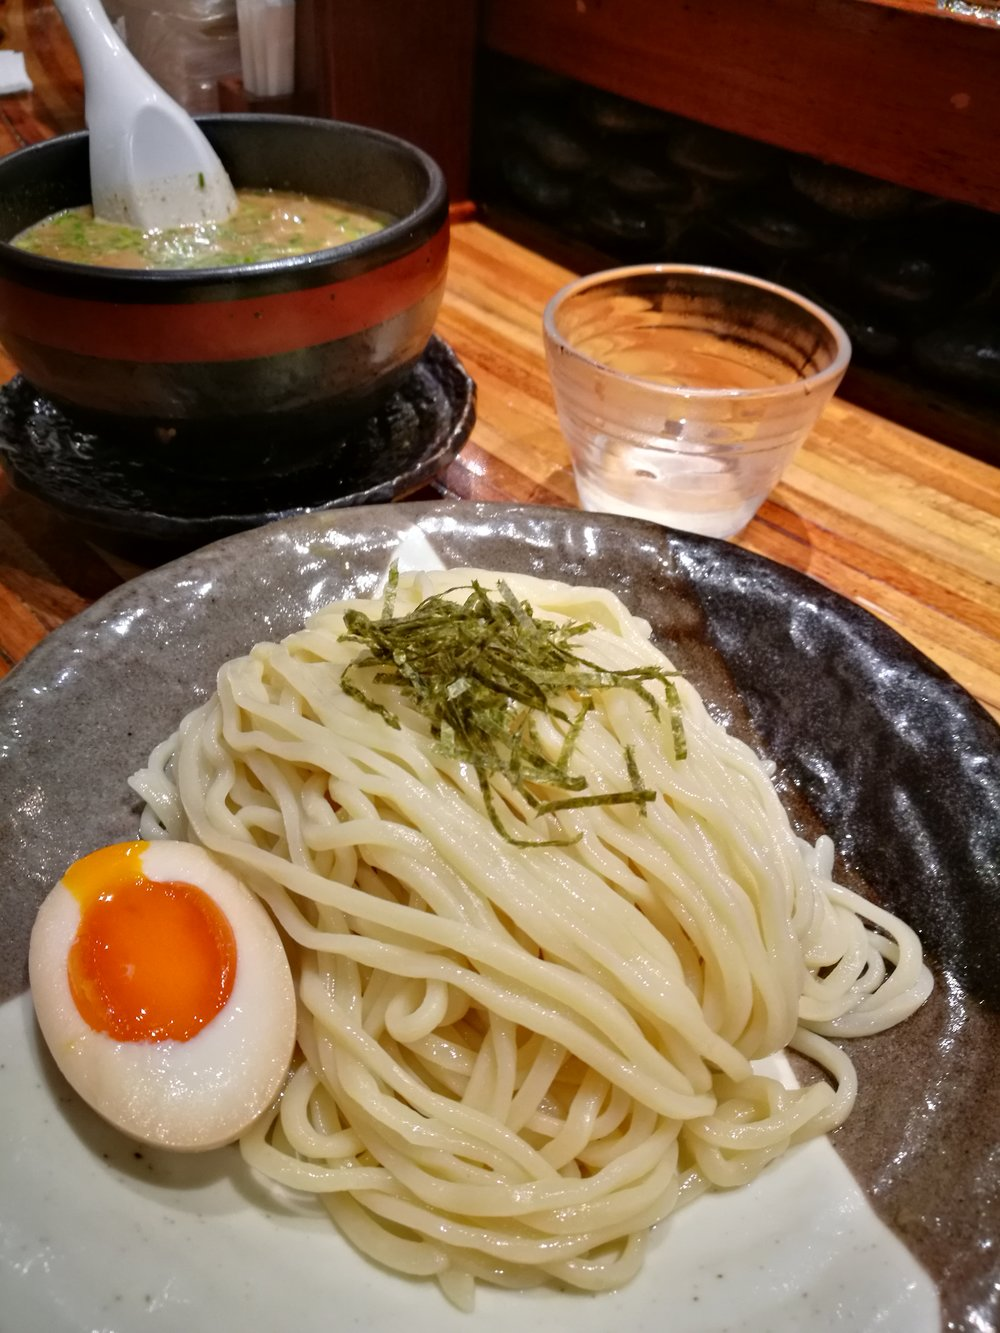 Tsukemen are noodles one dips into a savory sauce served separately.